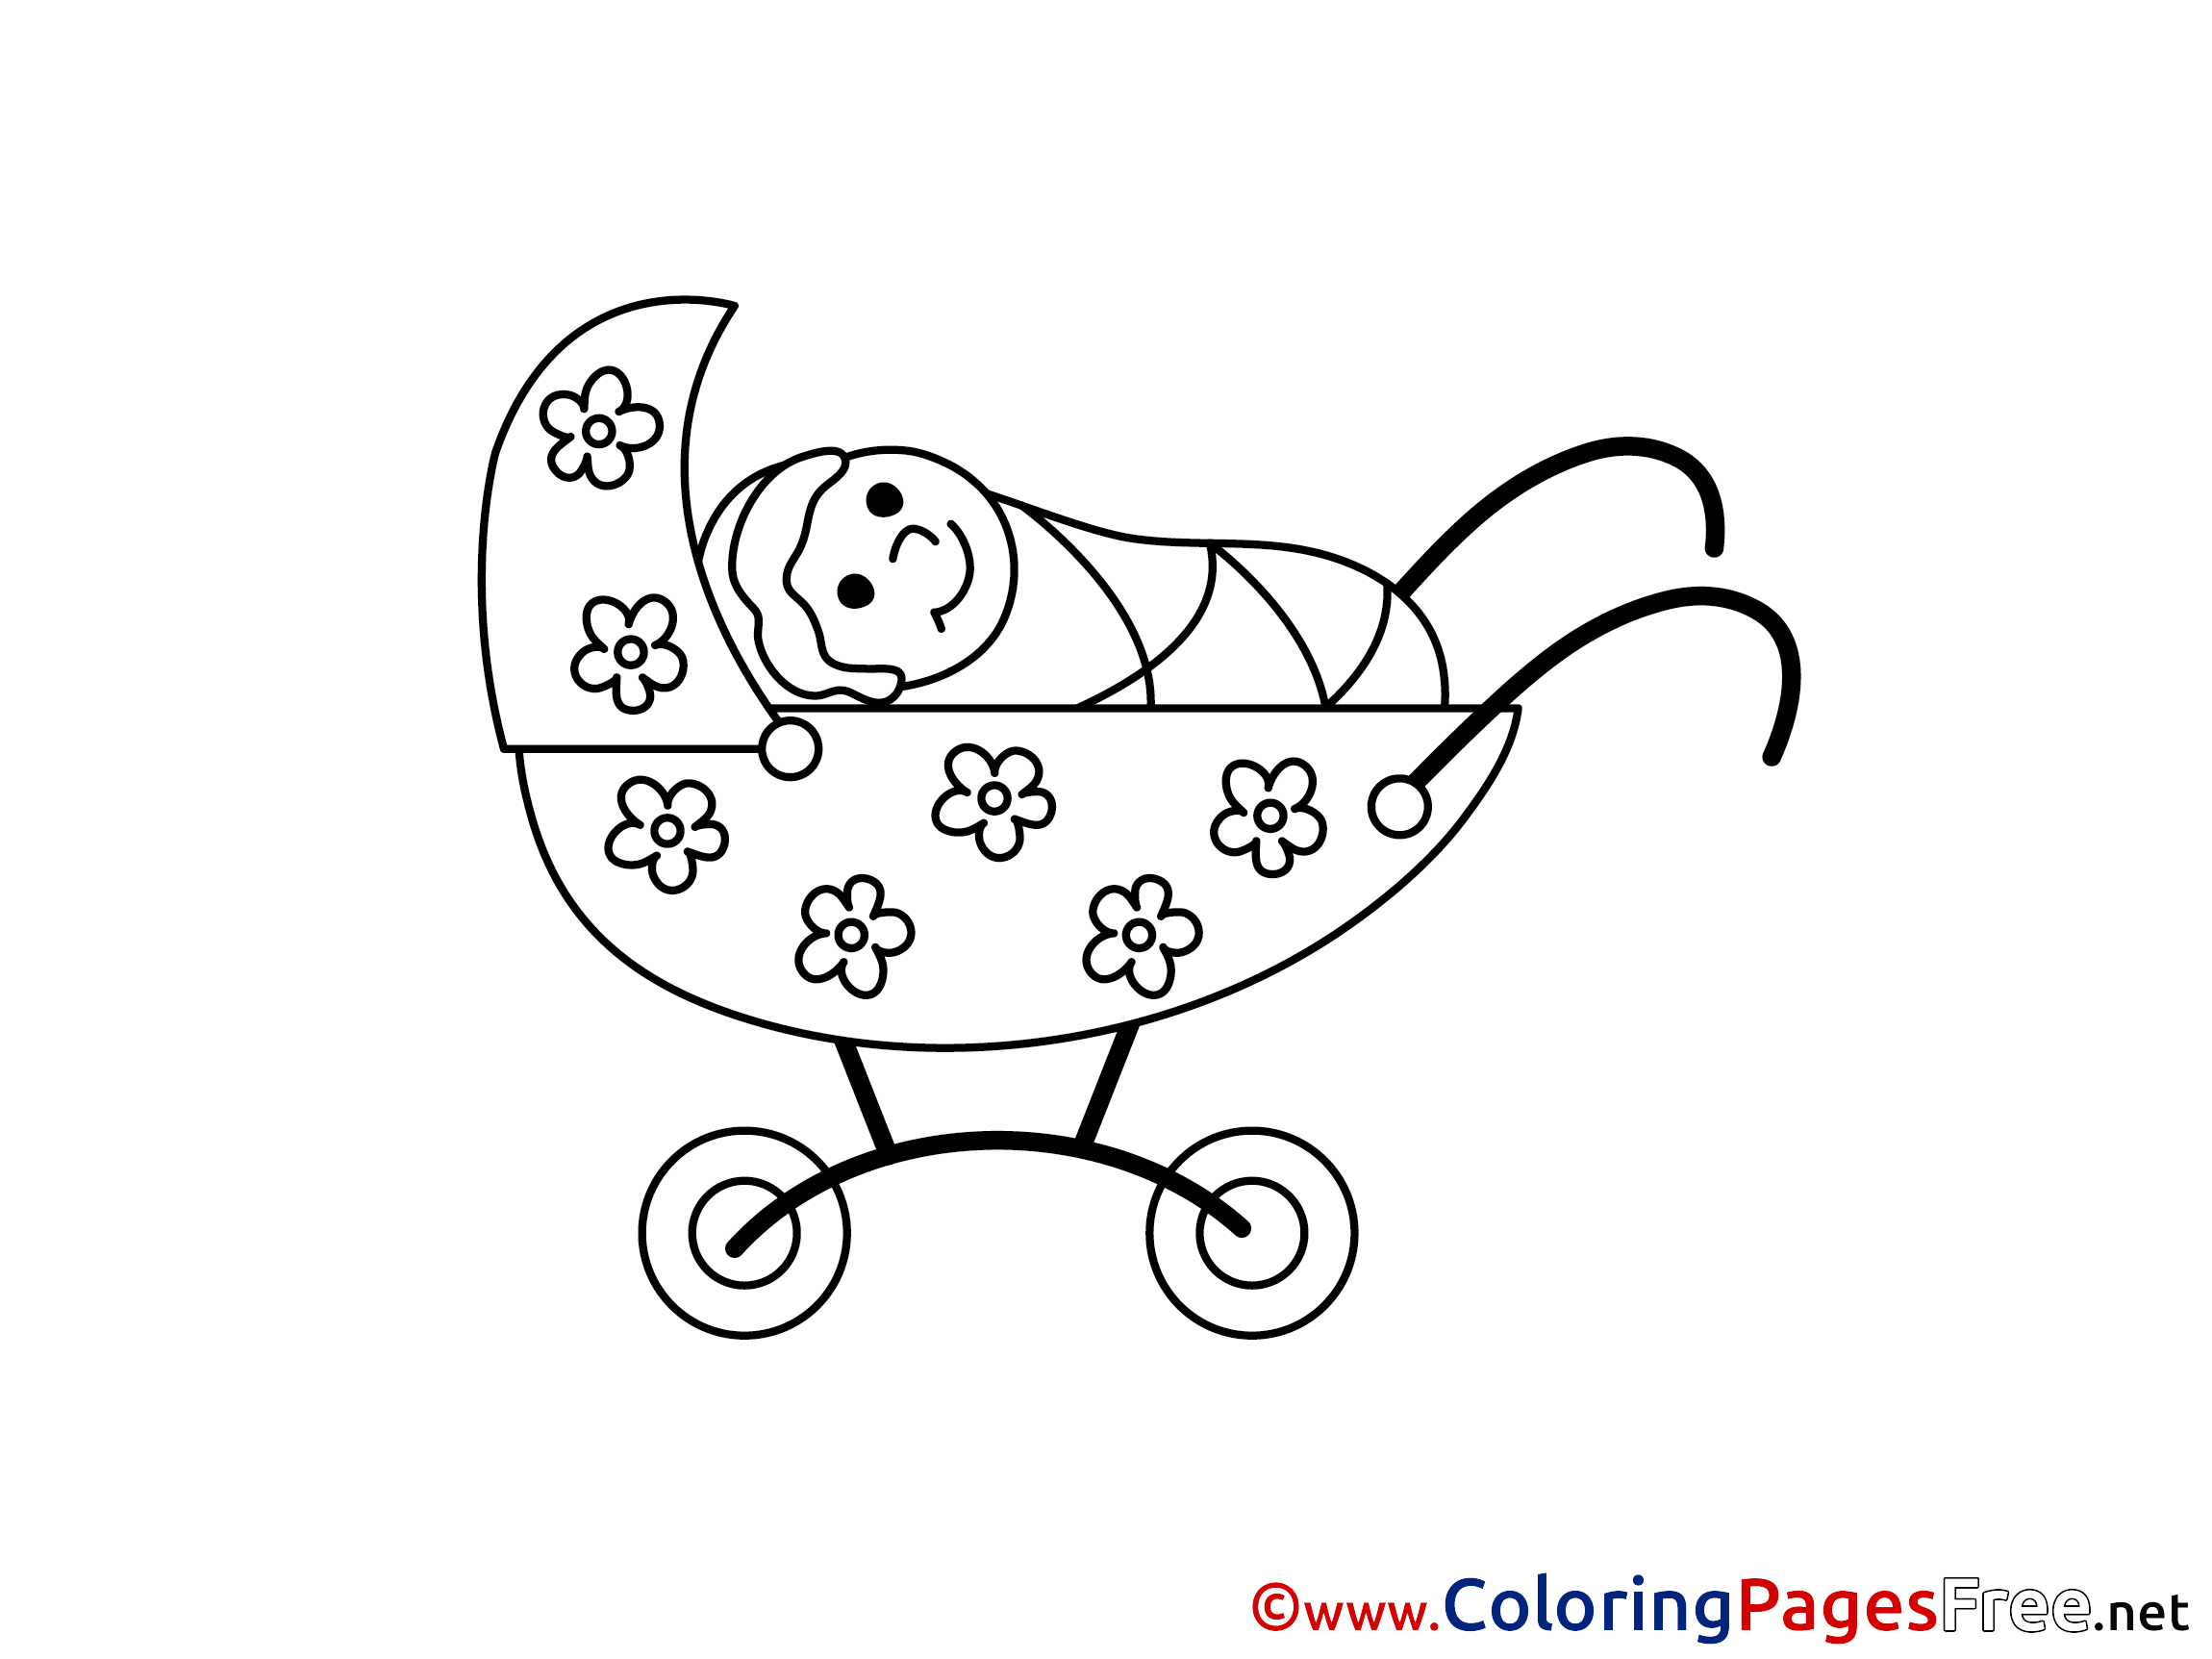 Baby Stroller Coloring Pages - Get Coloring Pages | 1725x2300